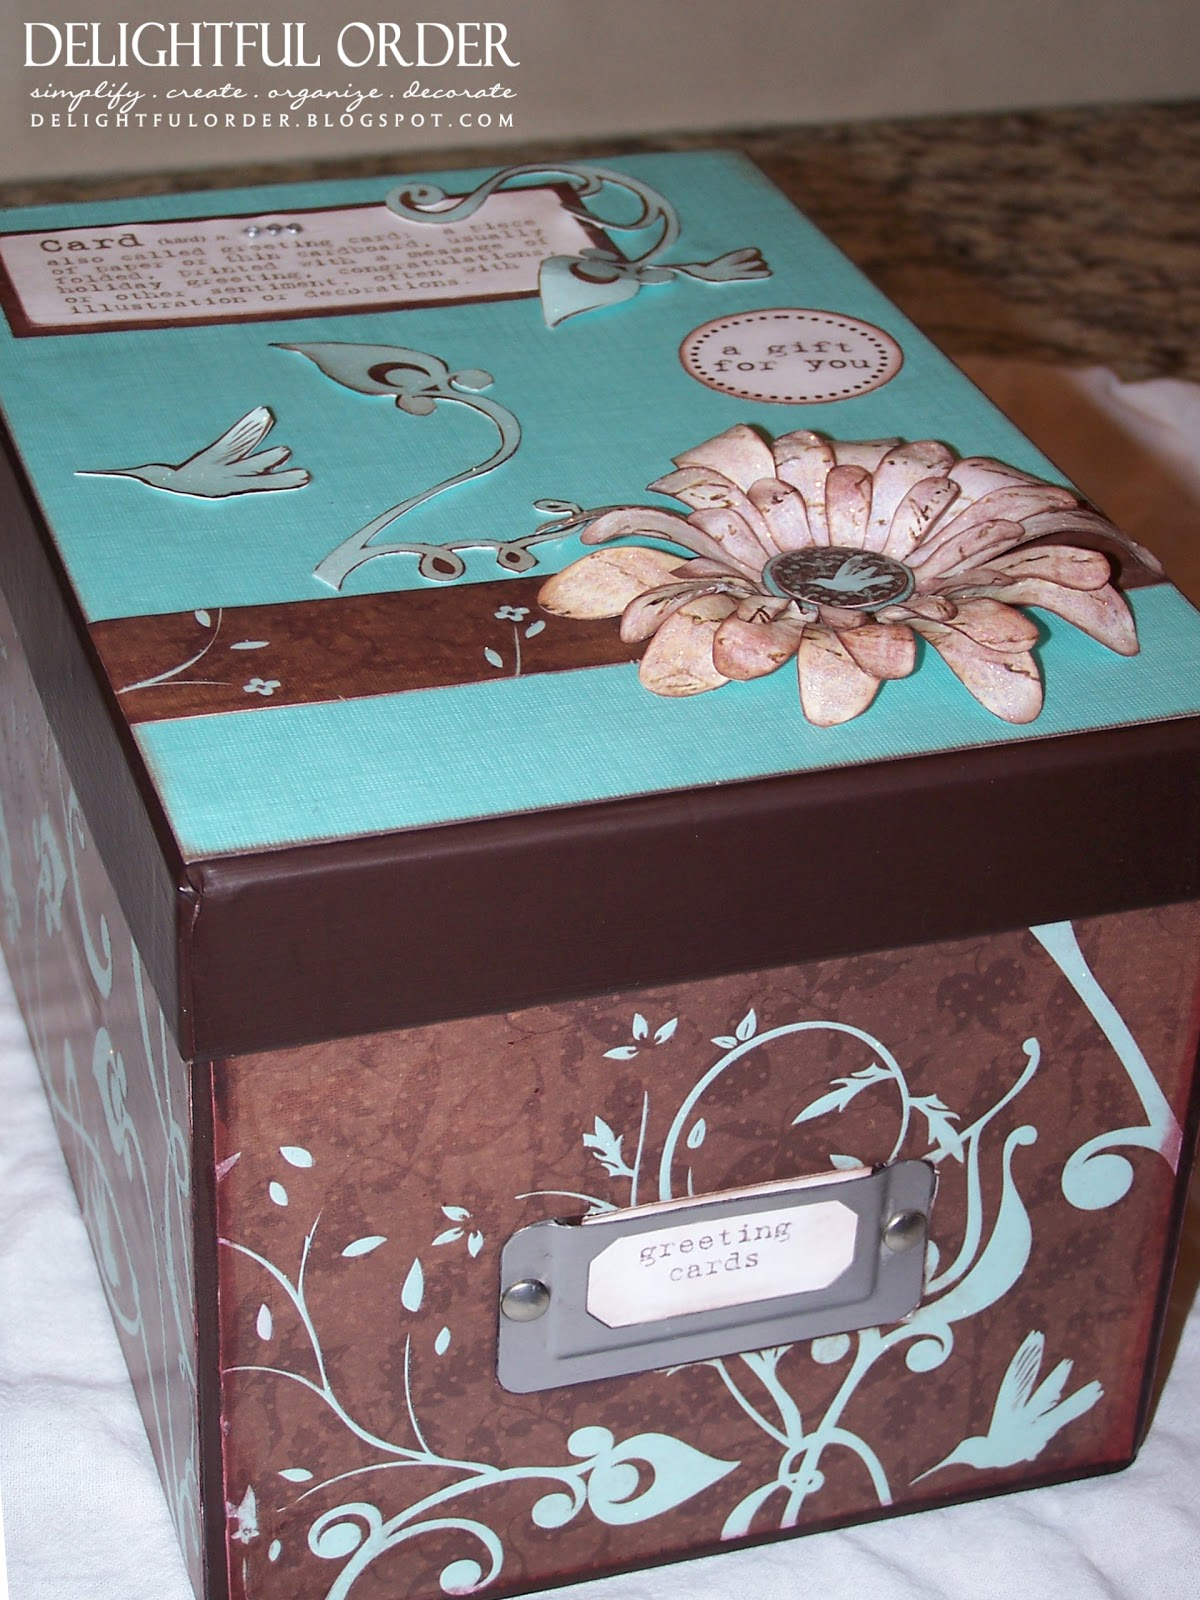 Delightful Order Greeting Card Box Gift Idea